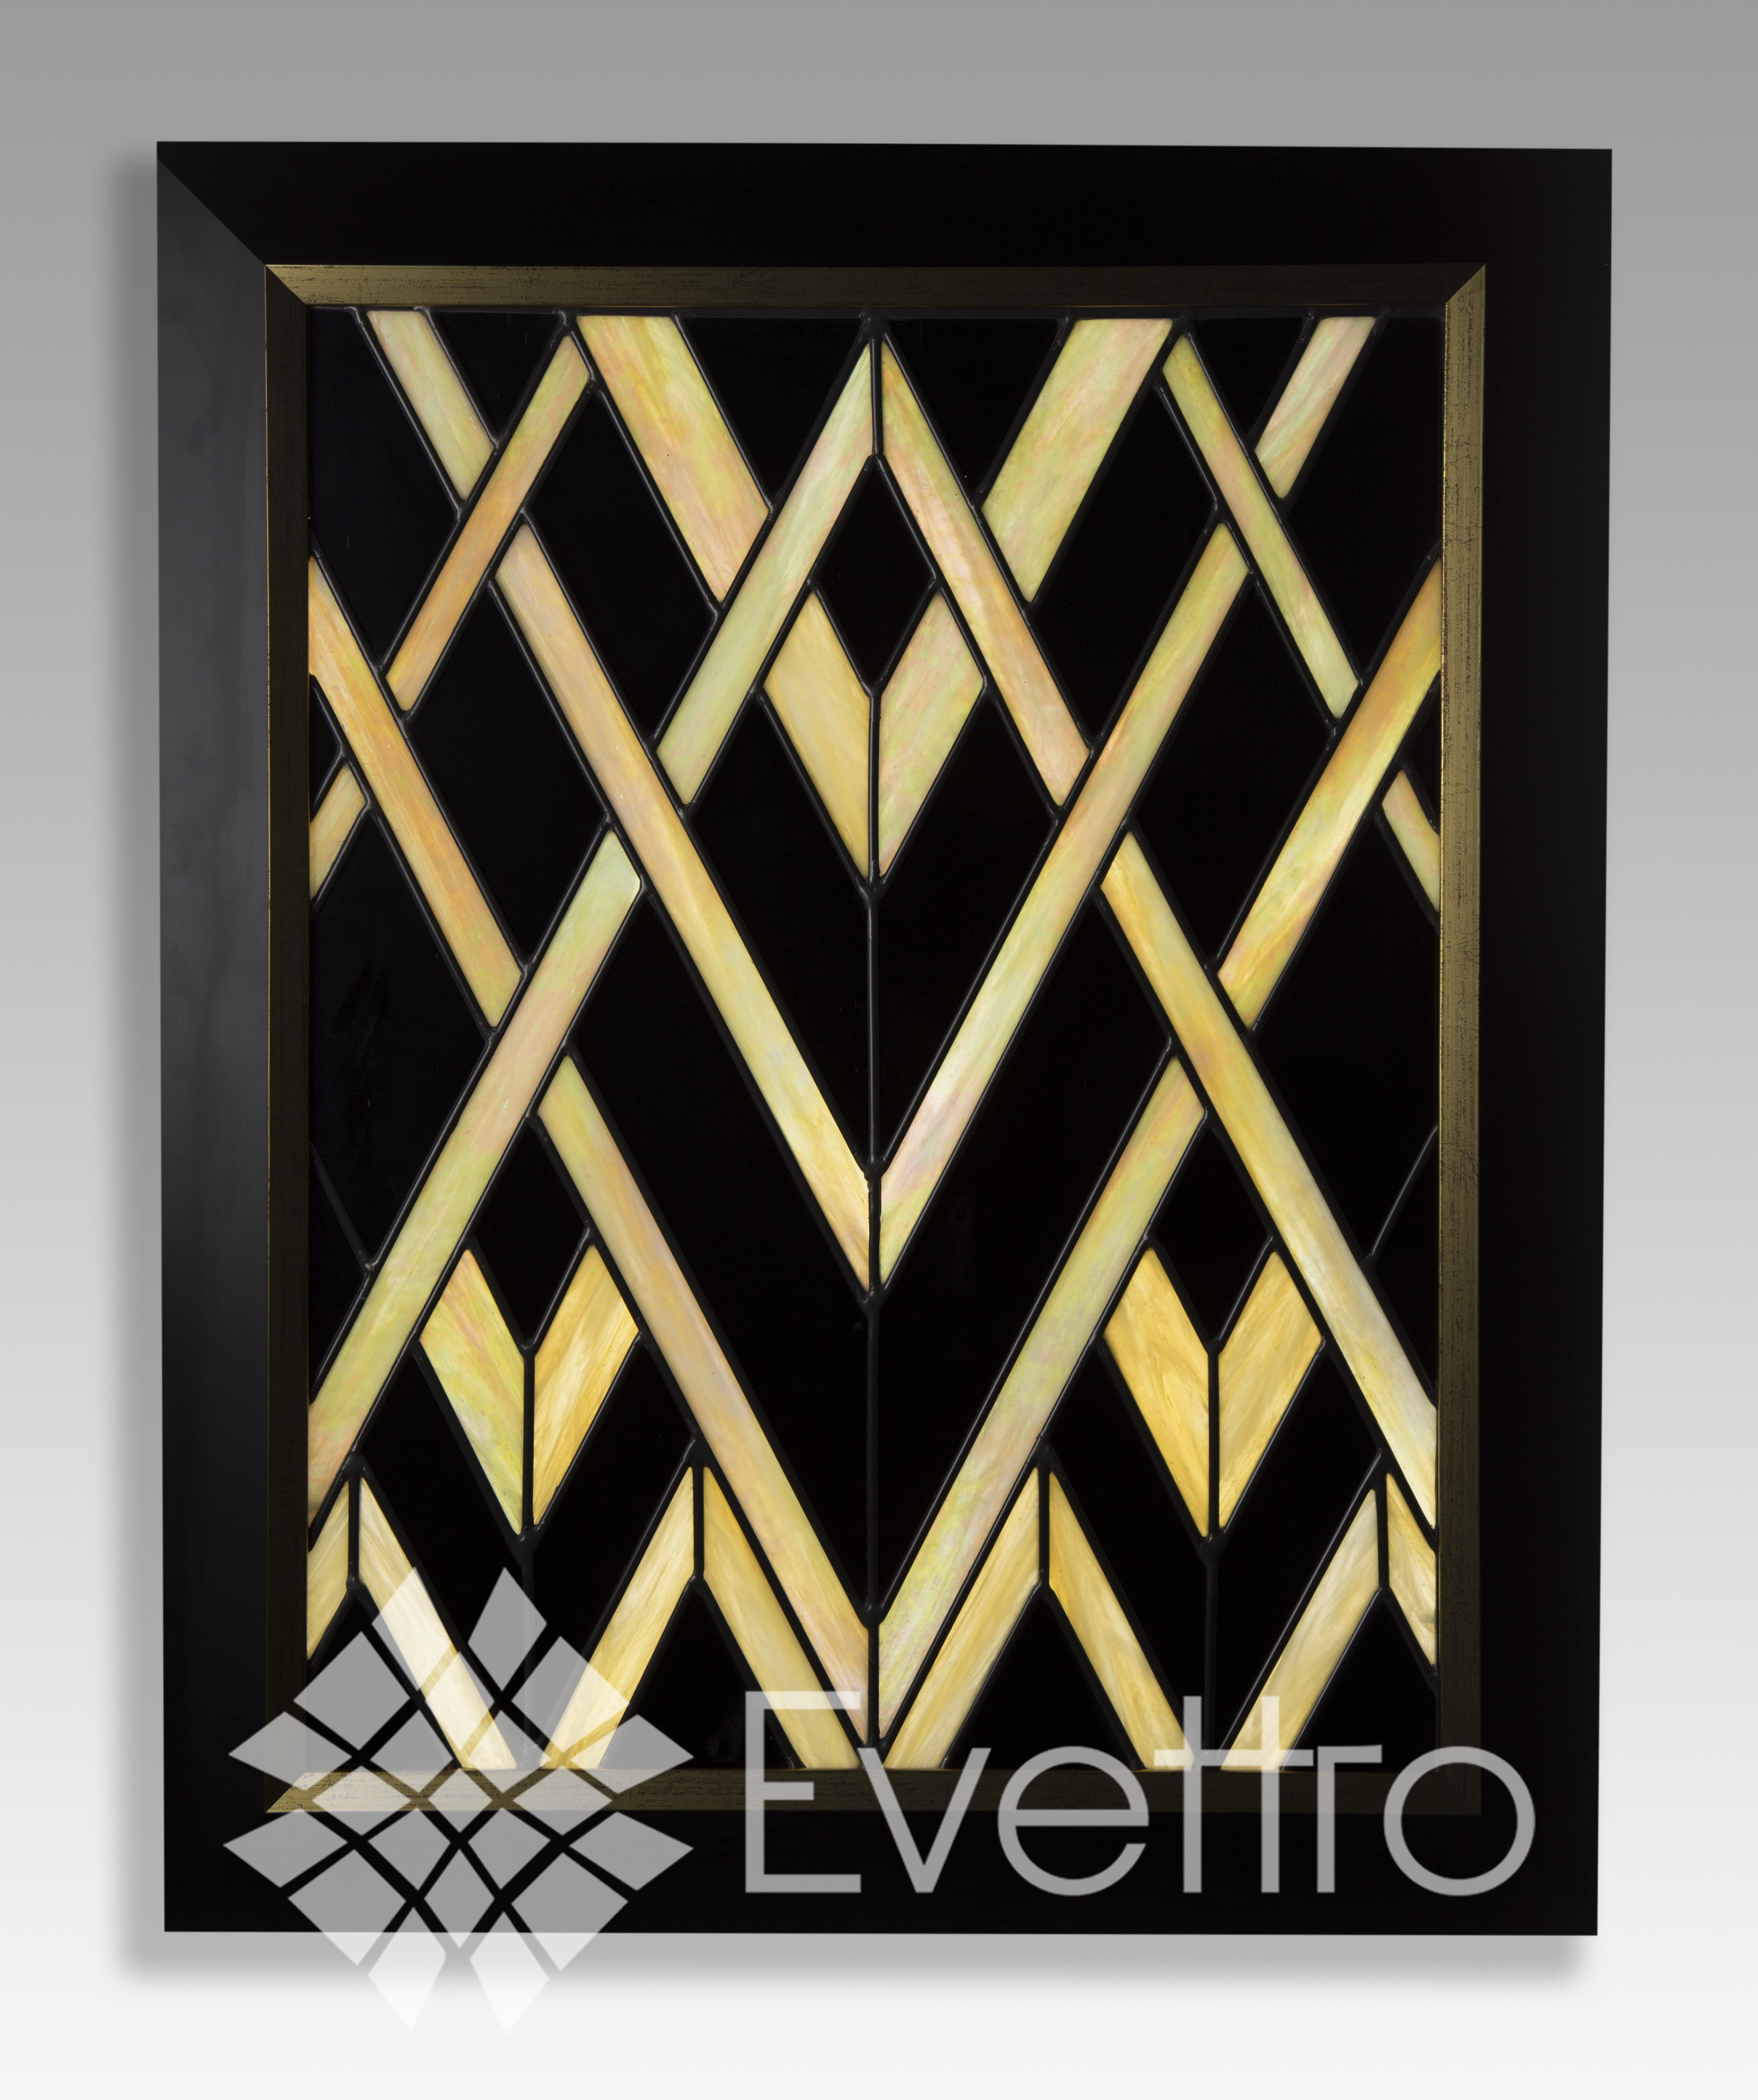 Deco Panel Bilder Evettro Art In Glass Art Deco Stained Glass Evettro